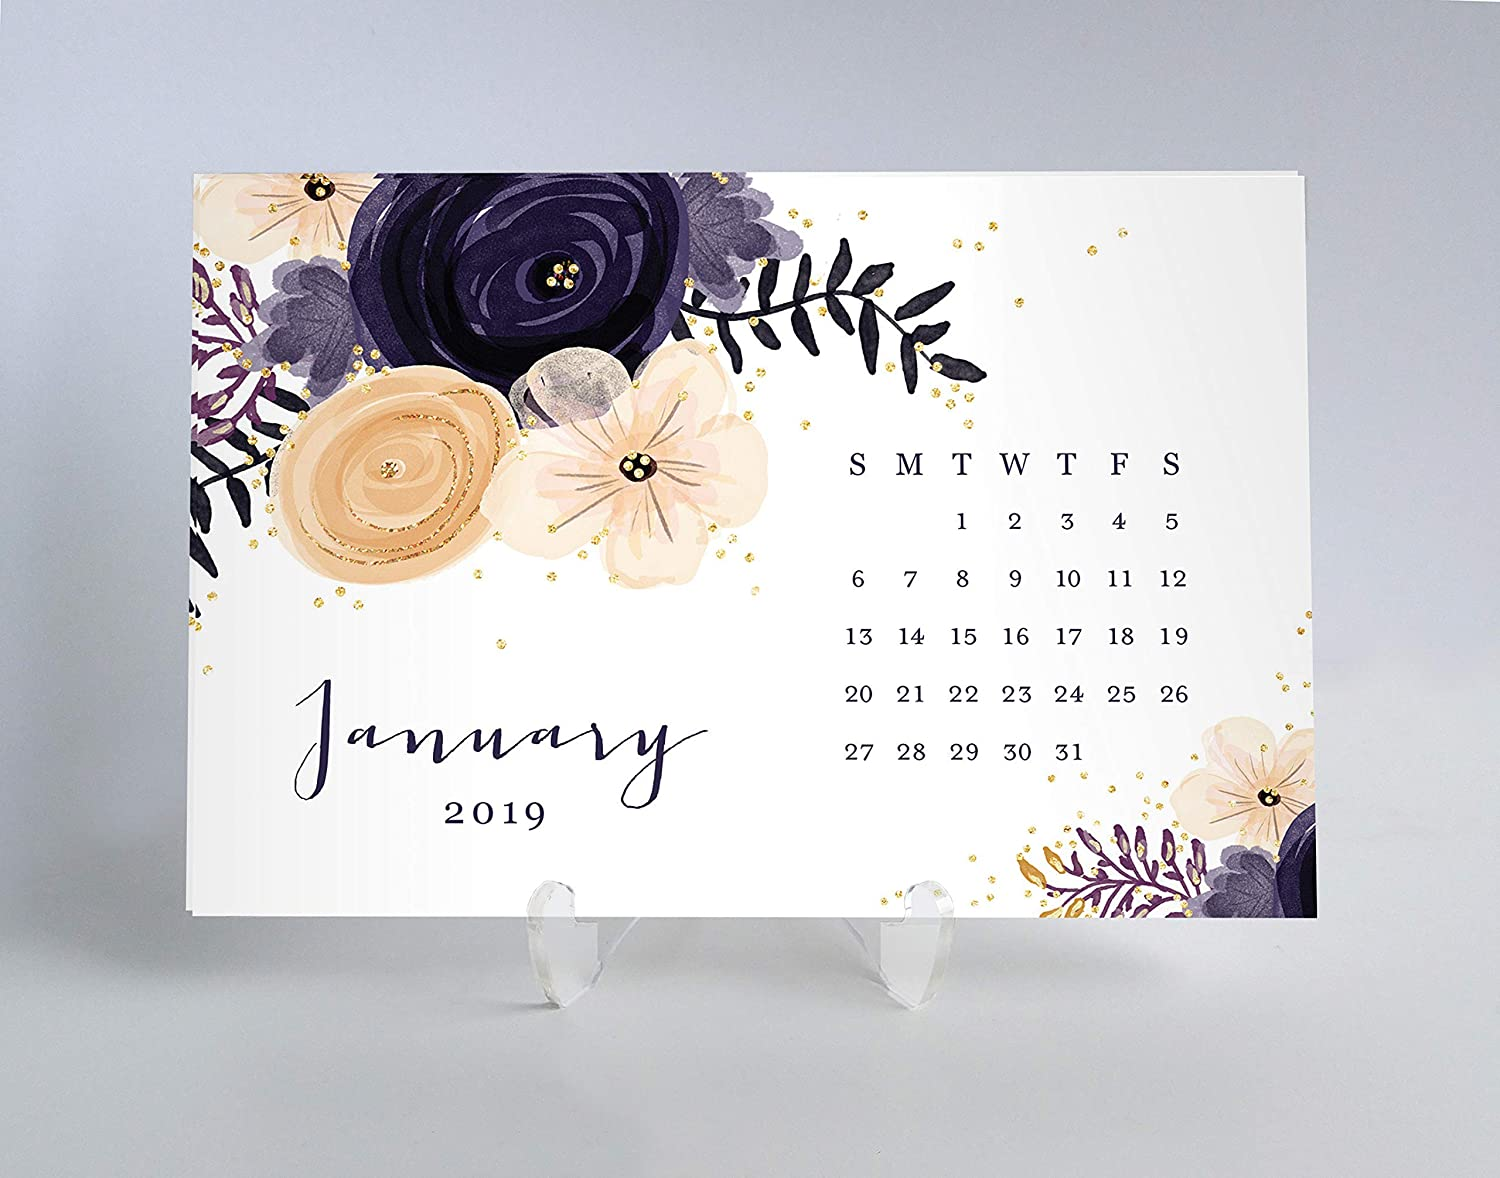 2019 Desk Calendar Appointment Meeting Planner Cards Pretty Plum & Peach Floral Design Birthday Christmas Gift for Woman Business Owner Job Office Coworker 4 x 6 inches w Clear Acrylic Stand – Kerri